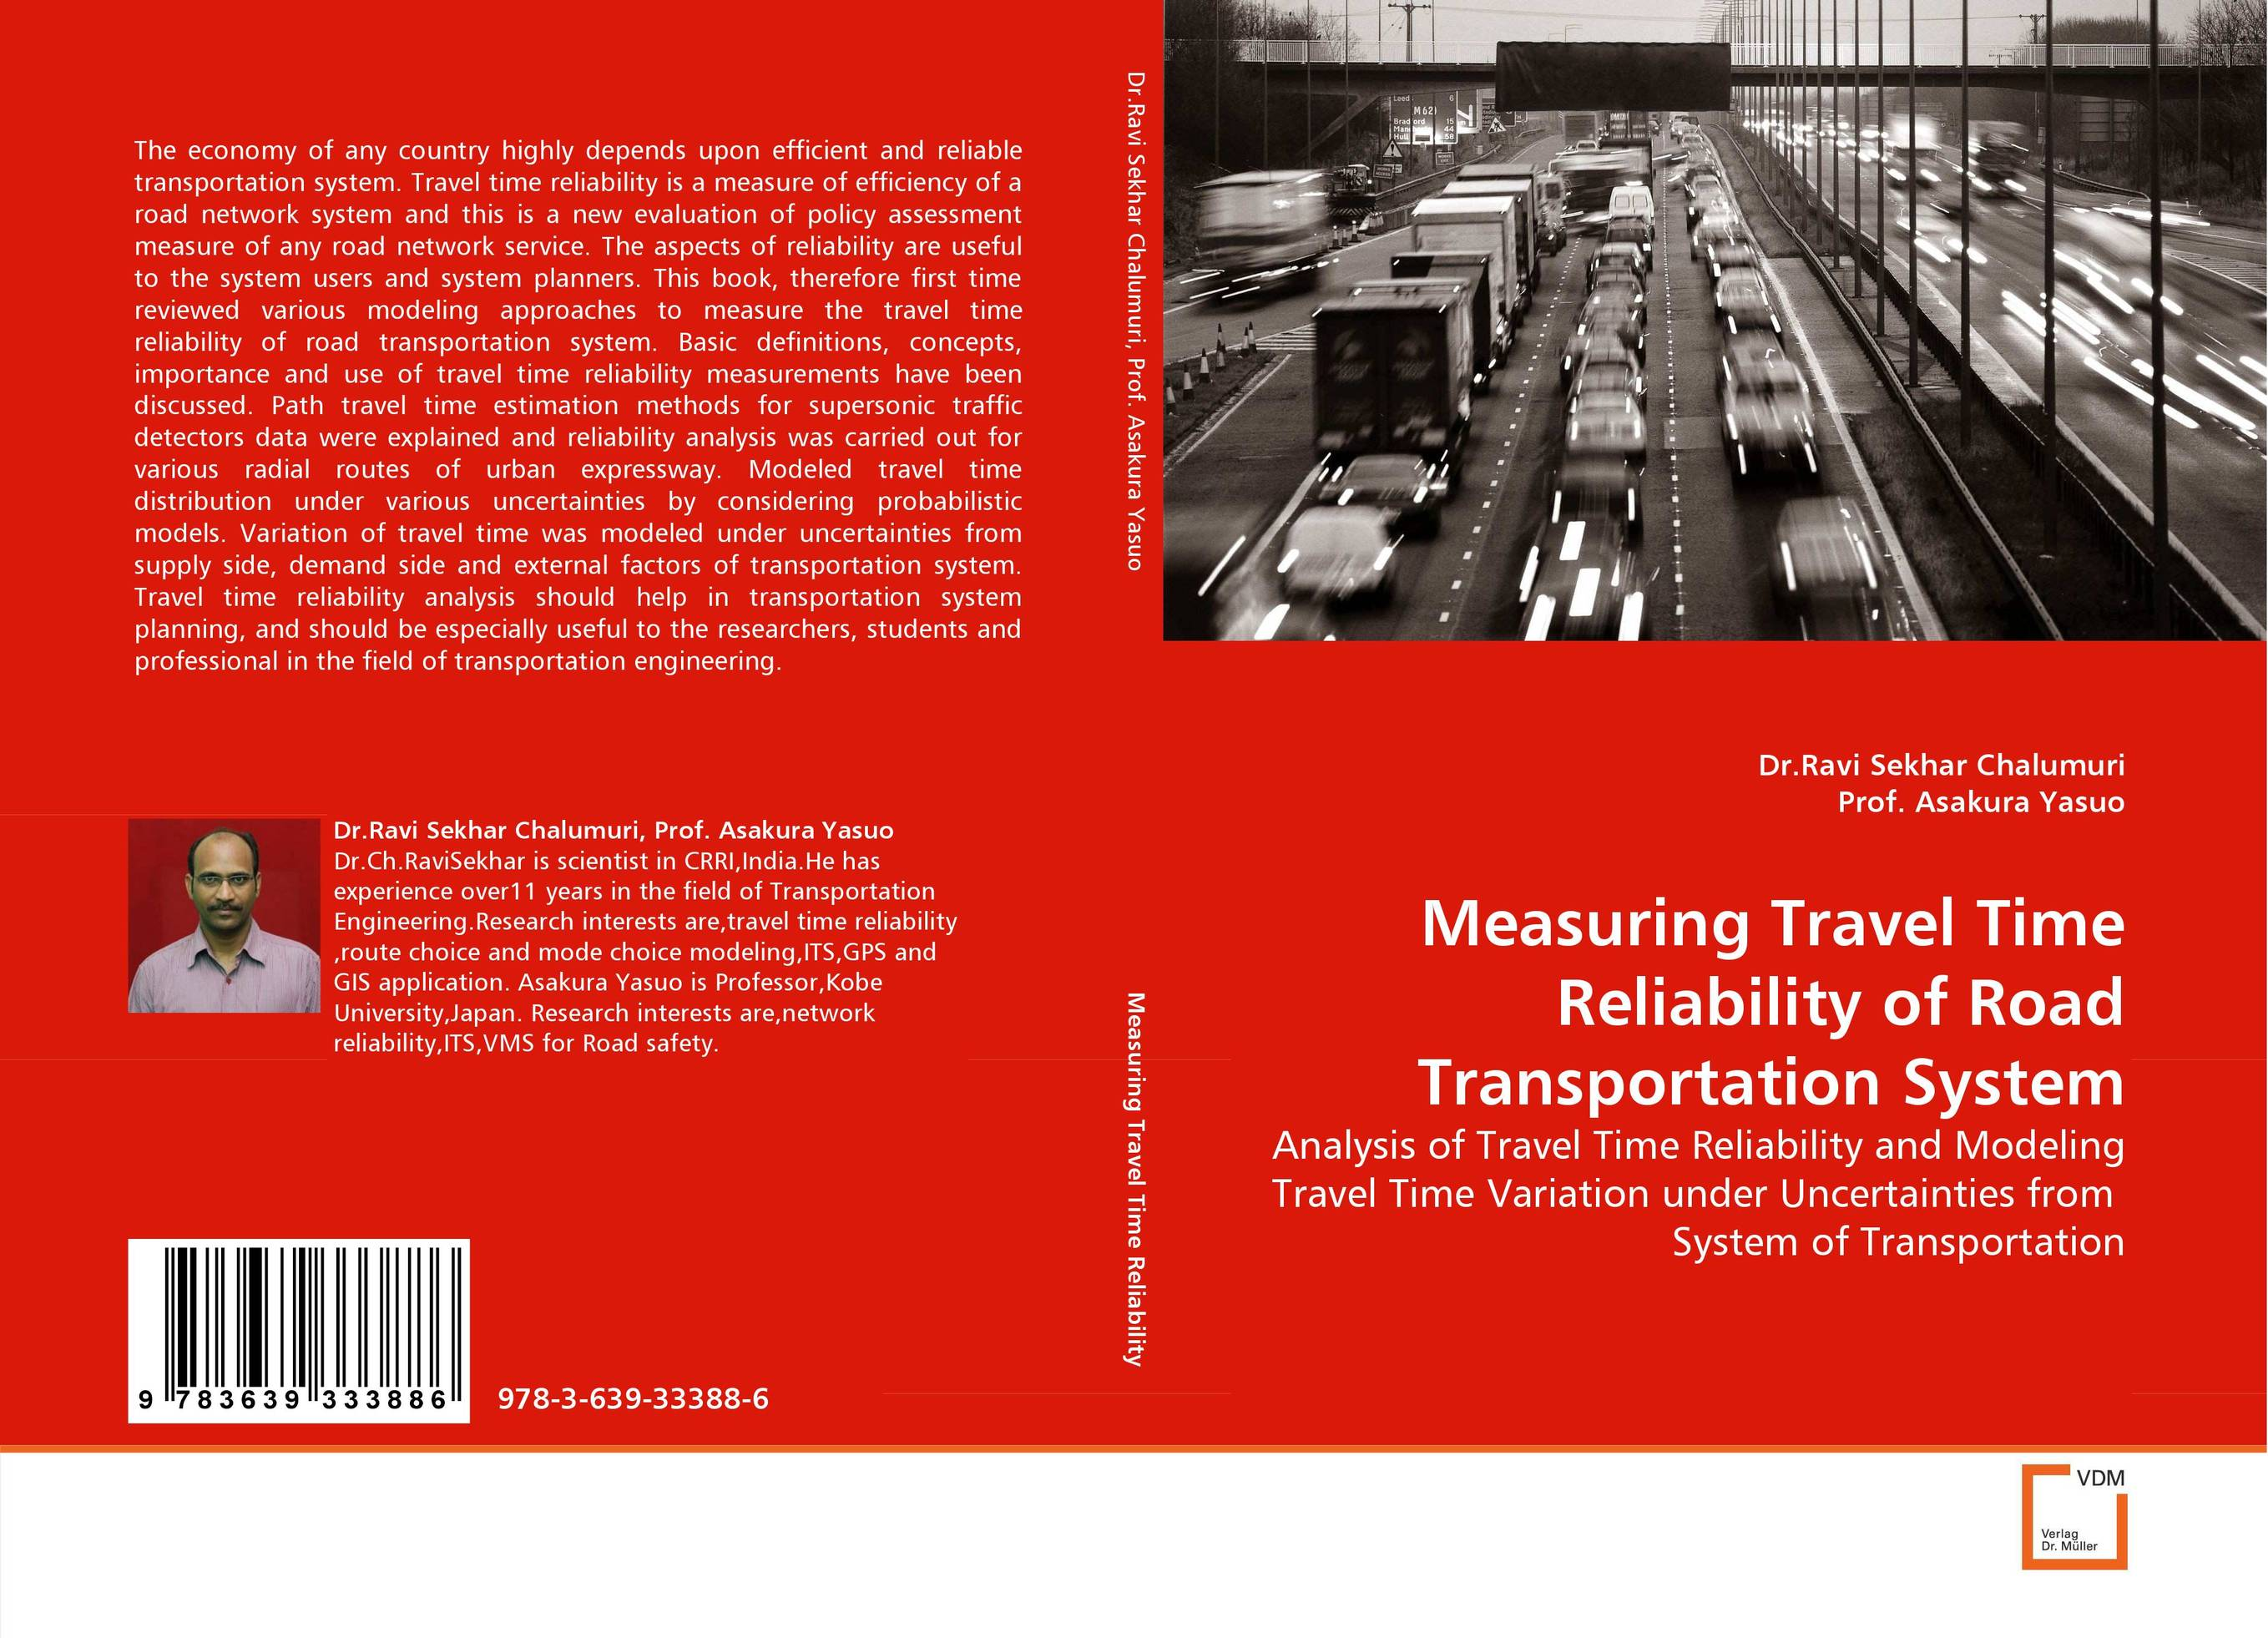 Measuring Travel Time Reliability of Road Transportation System yuanting wang does confucius xiao travel across time and languages